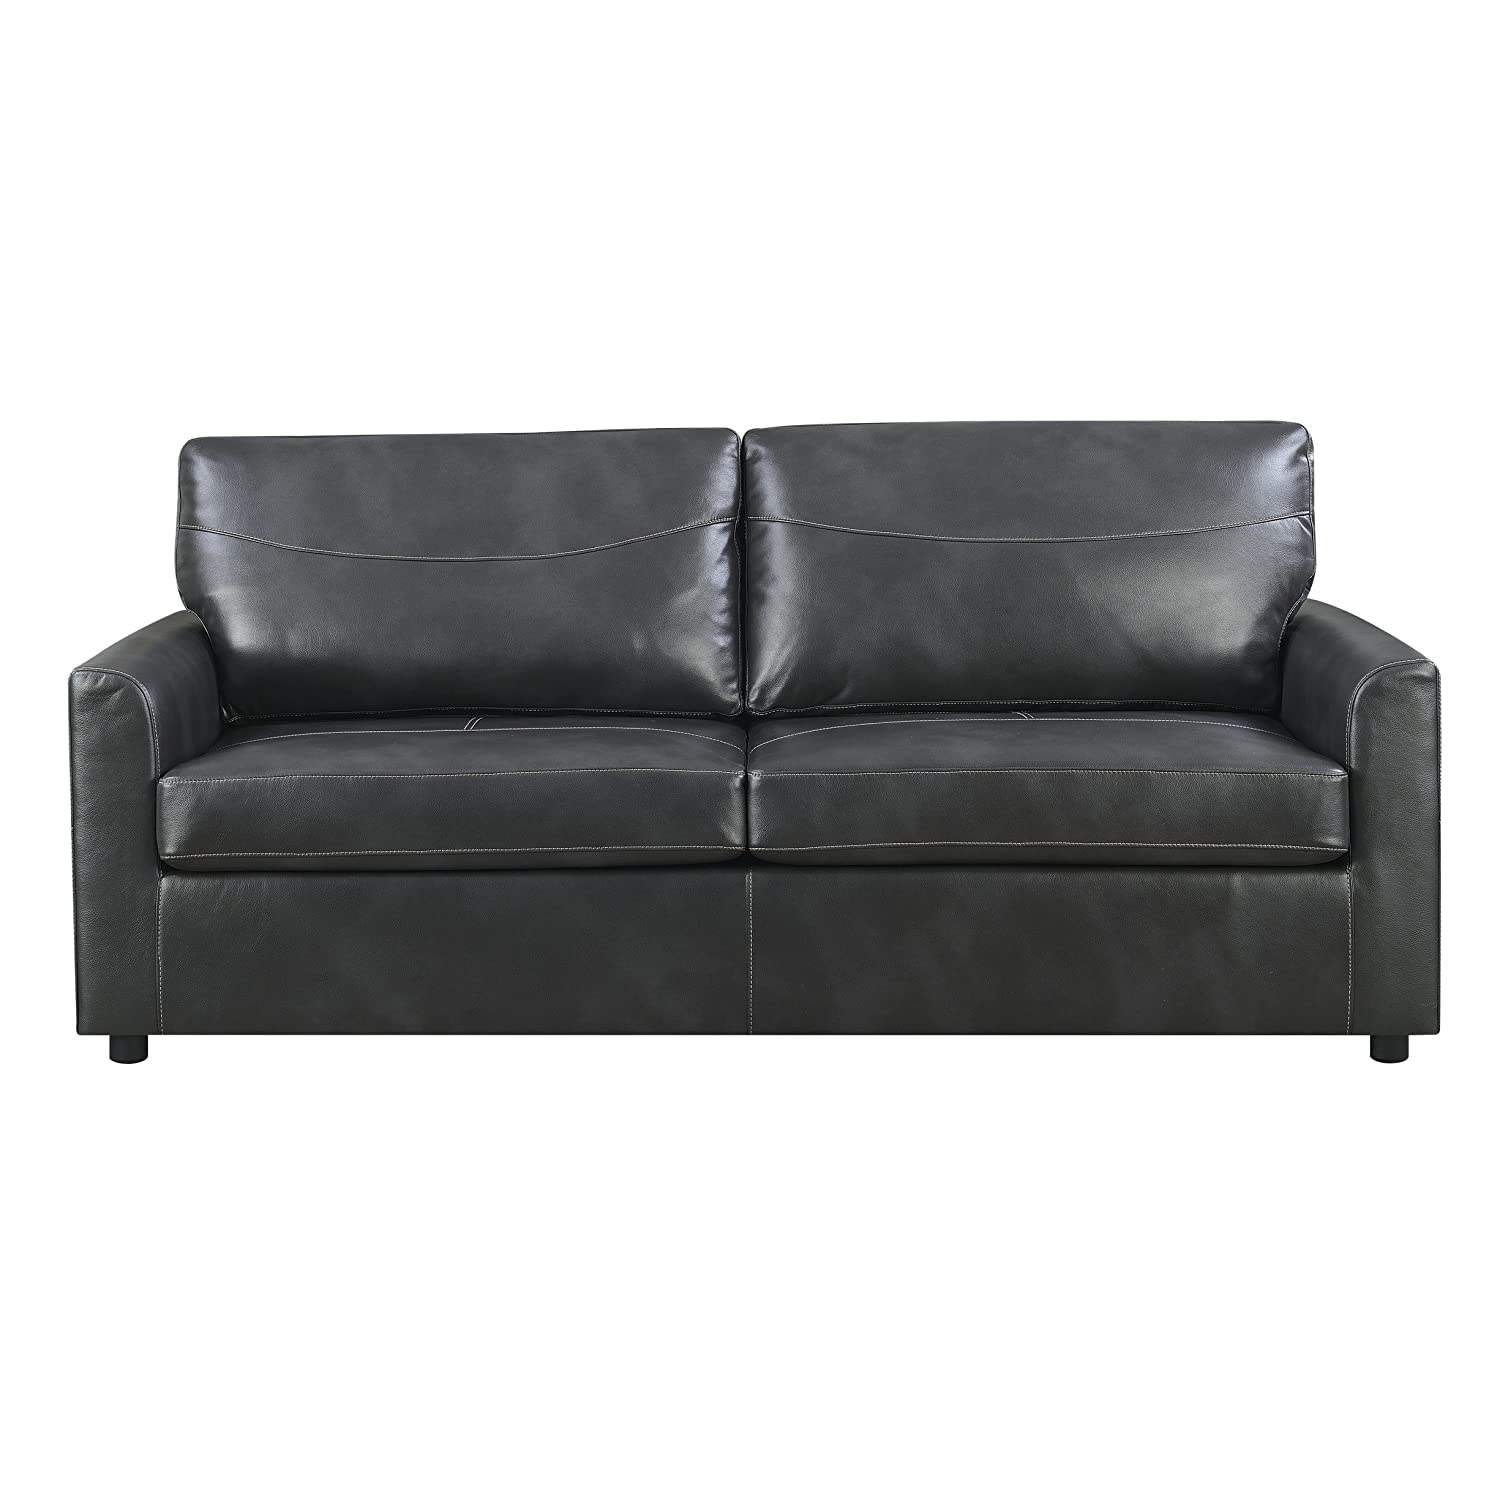 Emerald Home Slumber Charcoal Sleeper Sofa with Faux Leather Upholstery And  Gel Foam Mattress